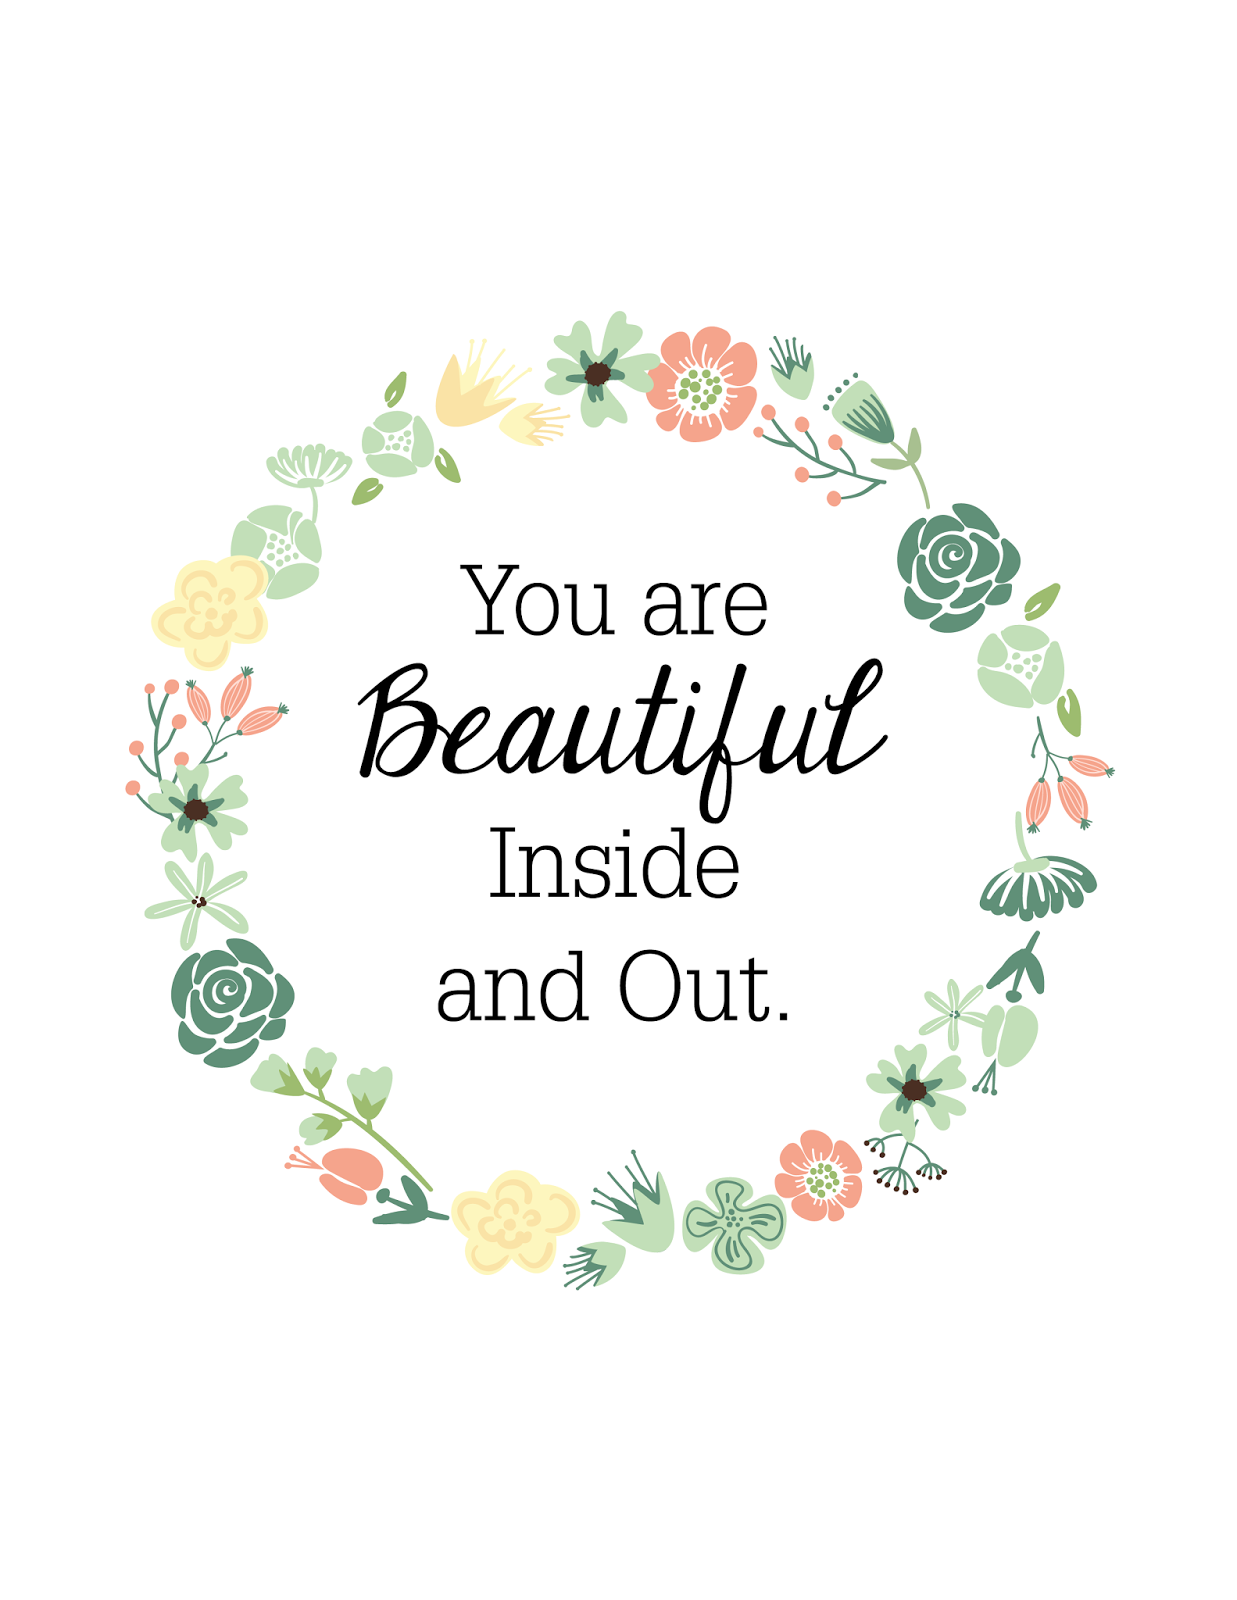 FREEBIES // YOU ARE BEAUTIFUL INSIDE & OUT - Oh So Lovely Blog